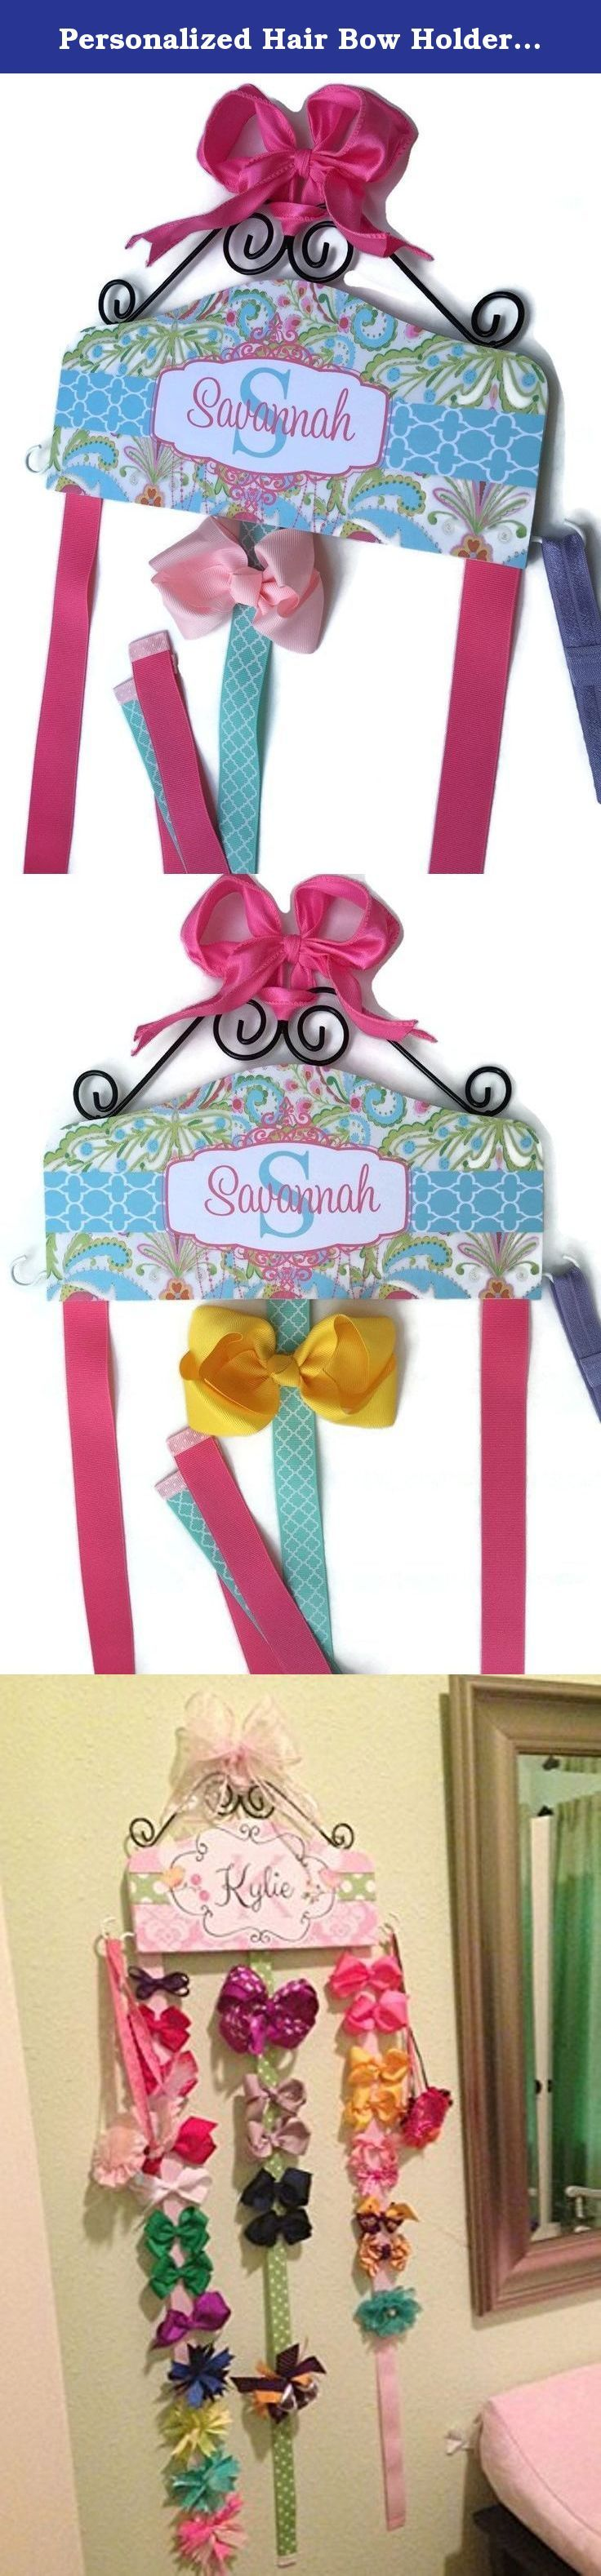 personalized hair bow holder made to match bedroom decor or bedding headband holder